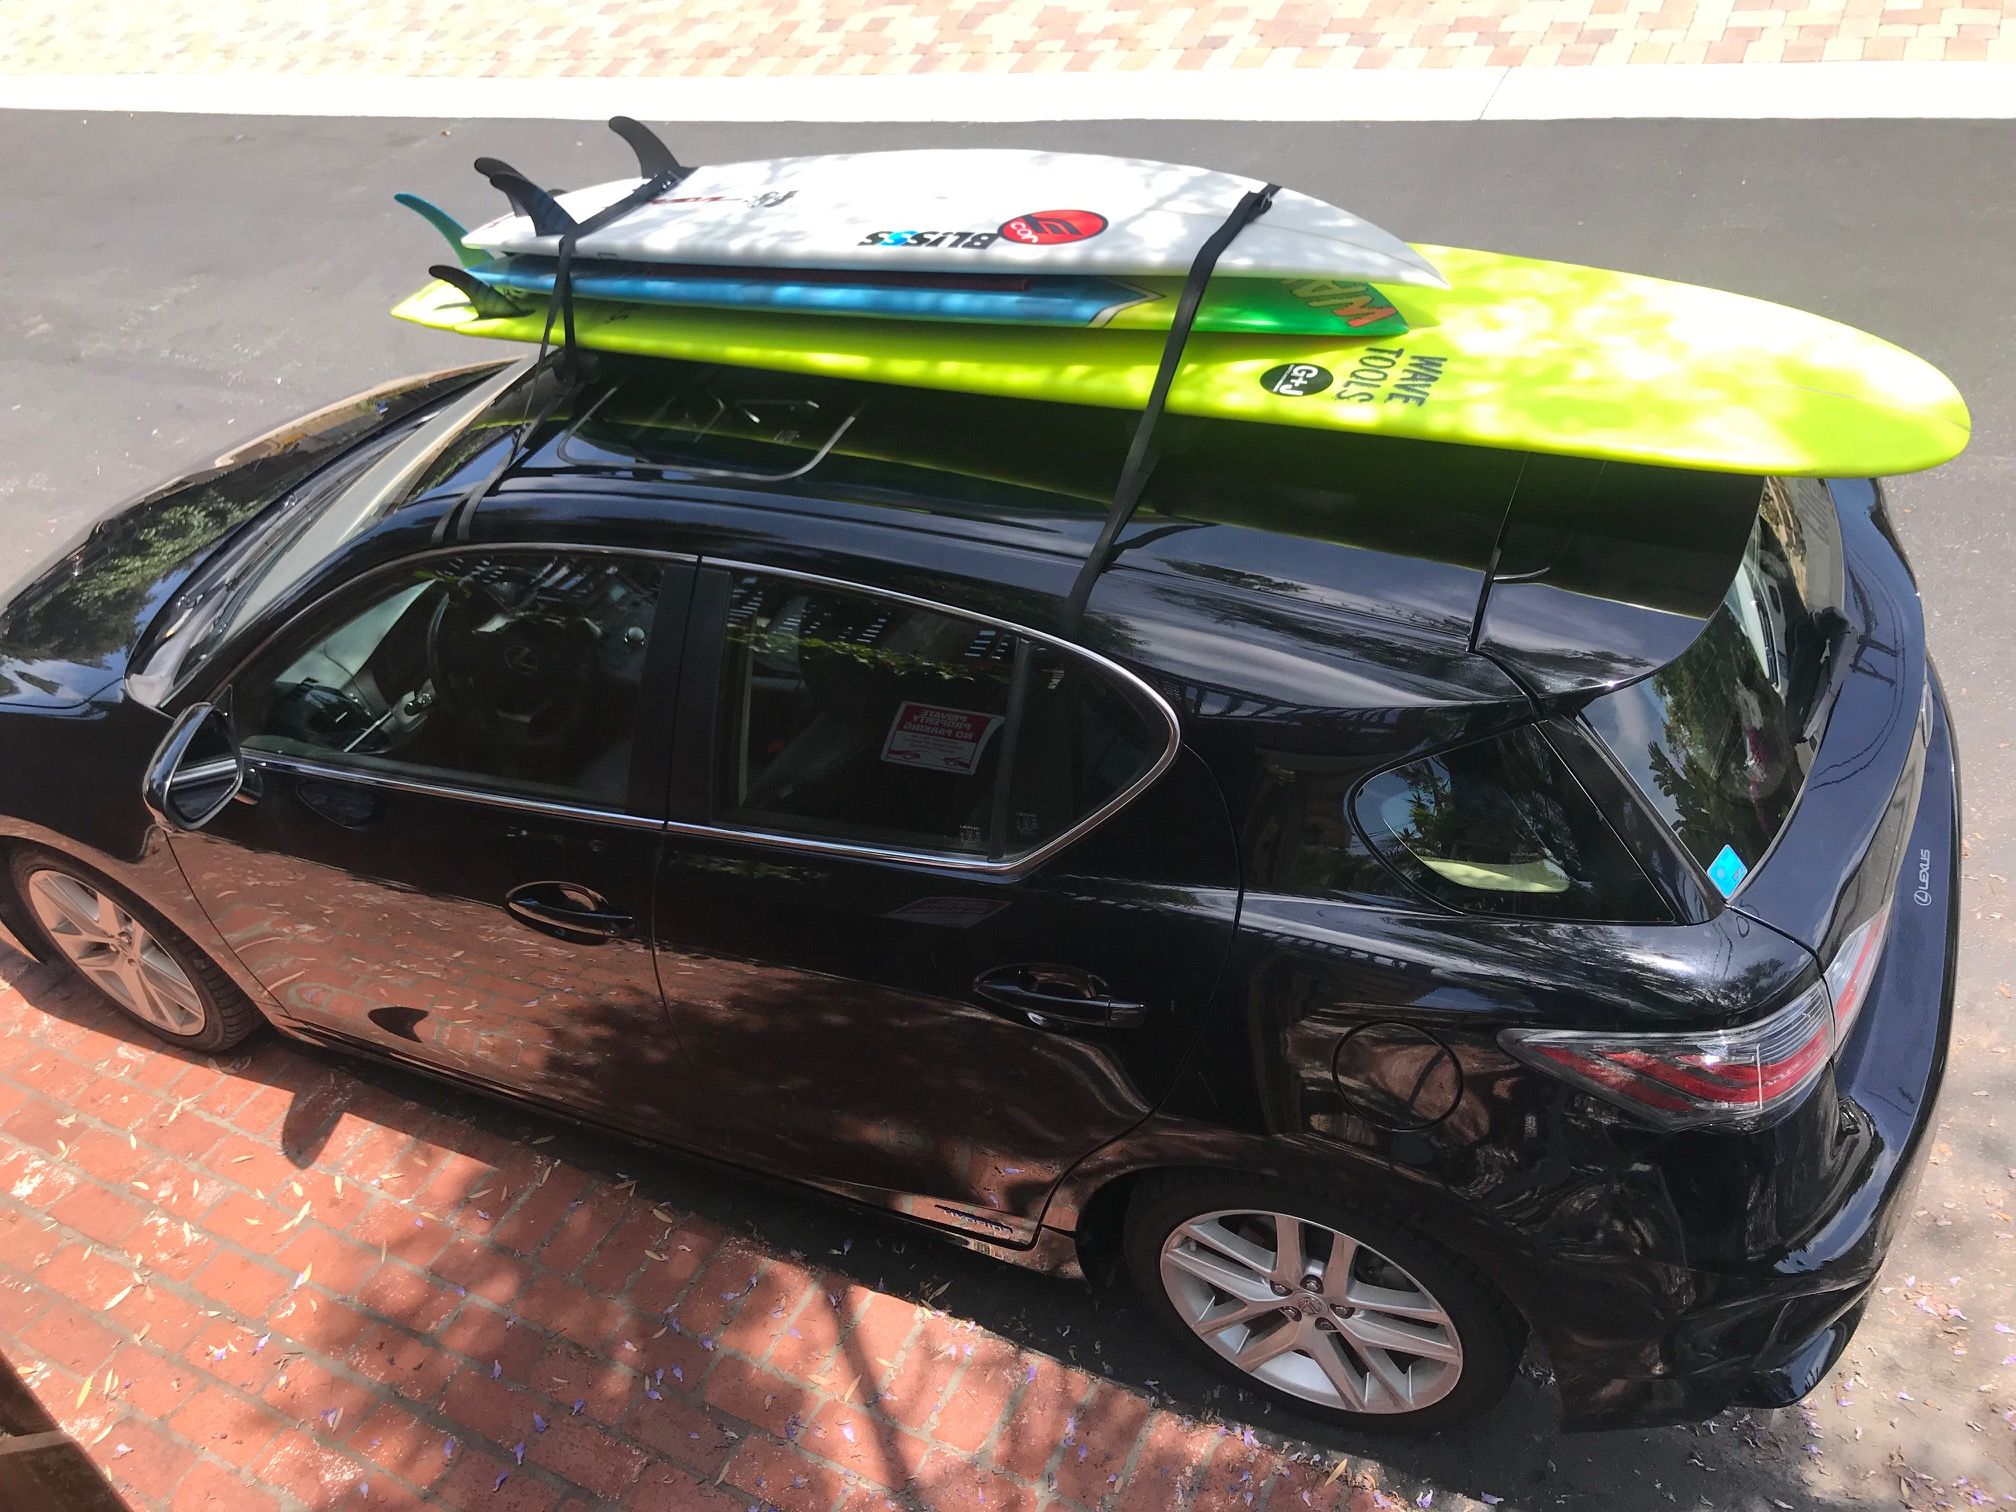 Soft Car Racks Universal Fit Roof Rack For Surf Sup Canoe Or Kayak Surf Accessories Surfboard Car Rack Surfboard Roof Rack